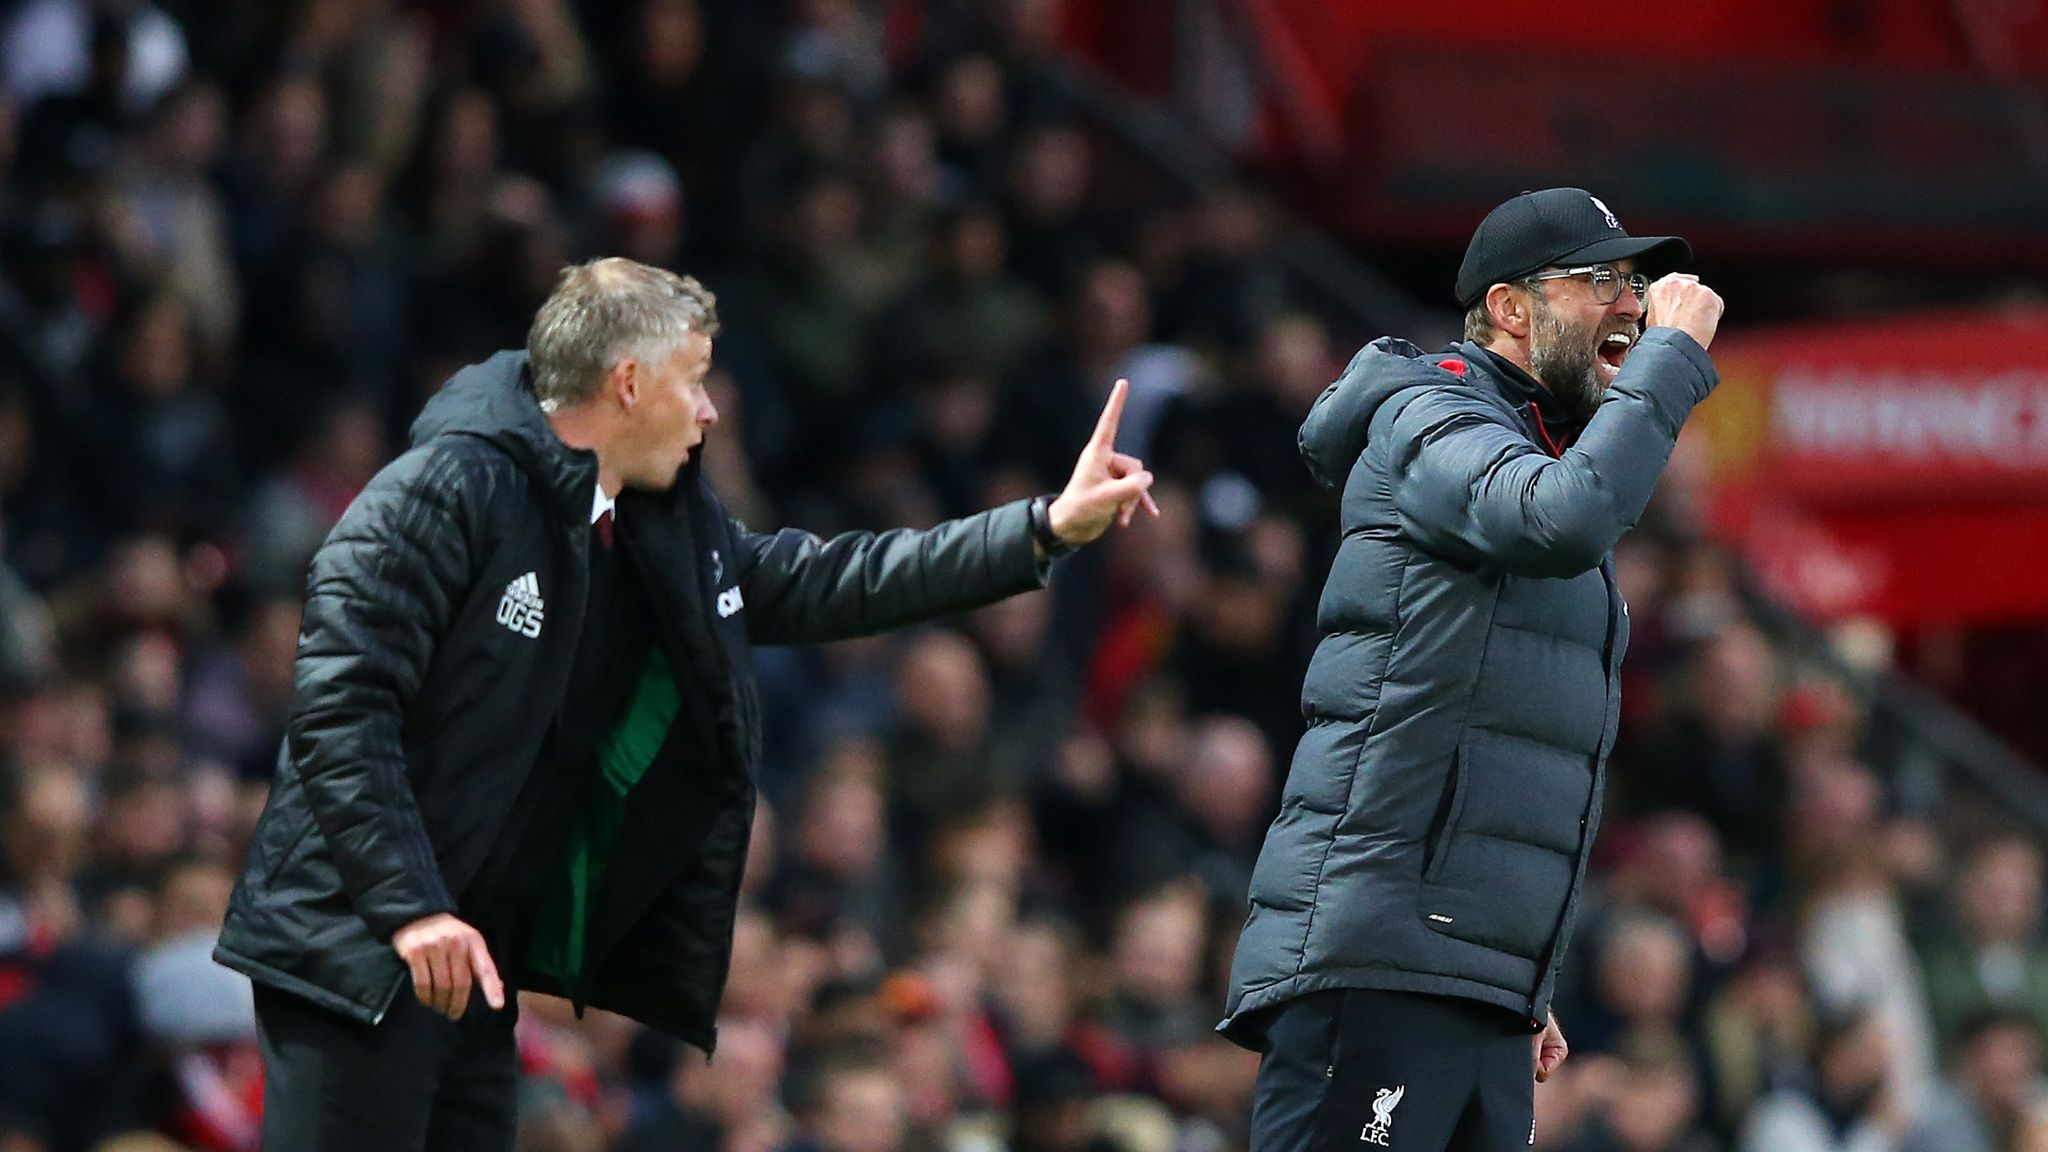 Jurgen Klopp: Man Utd 'just defended' against Liverpool, but Ole Gunnar Solskjaer says otherwise